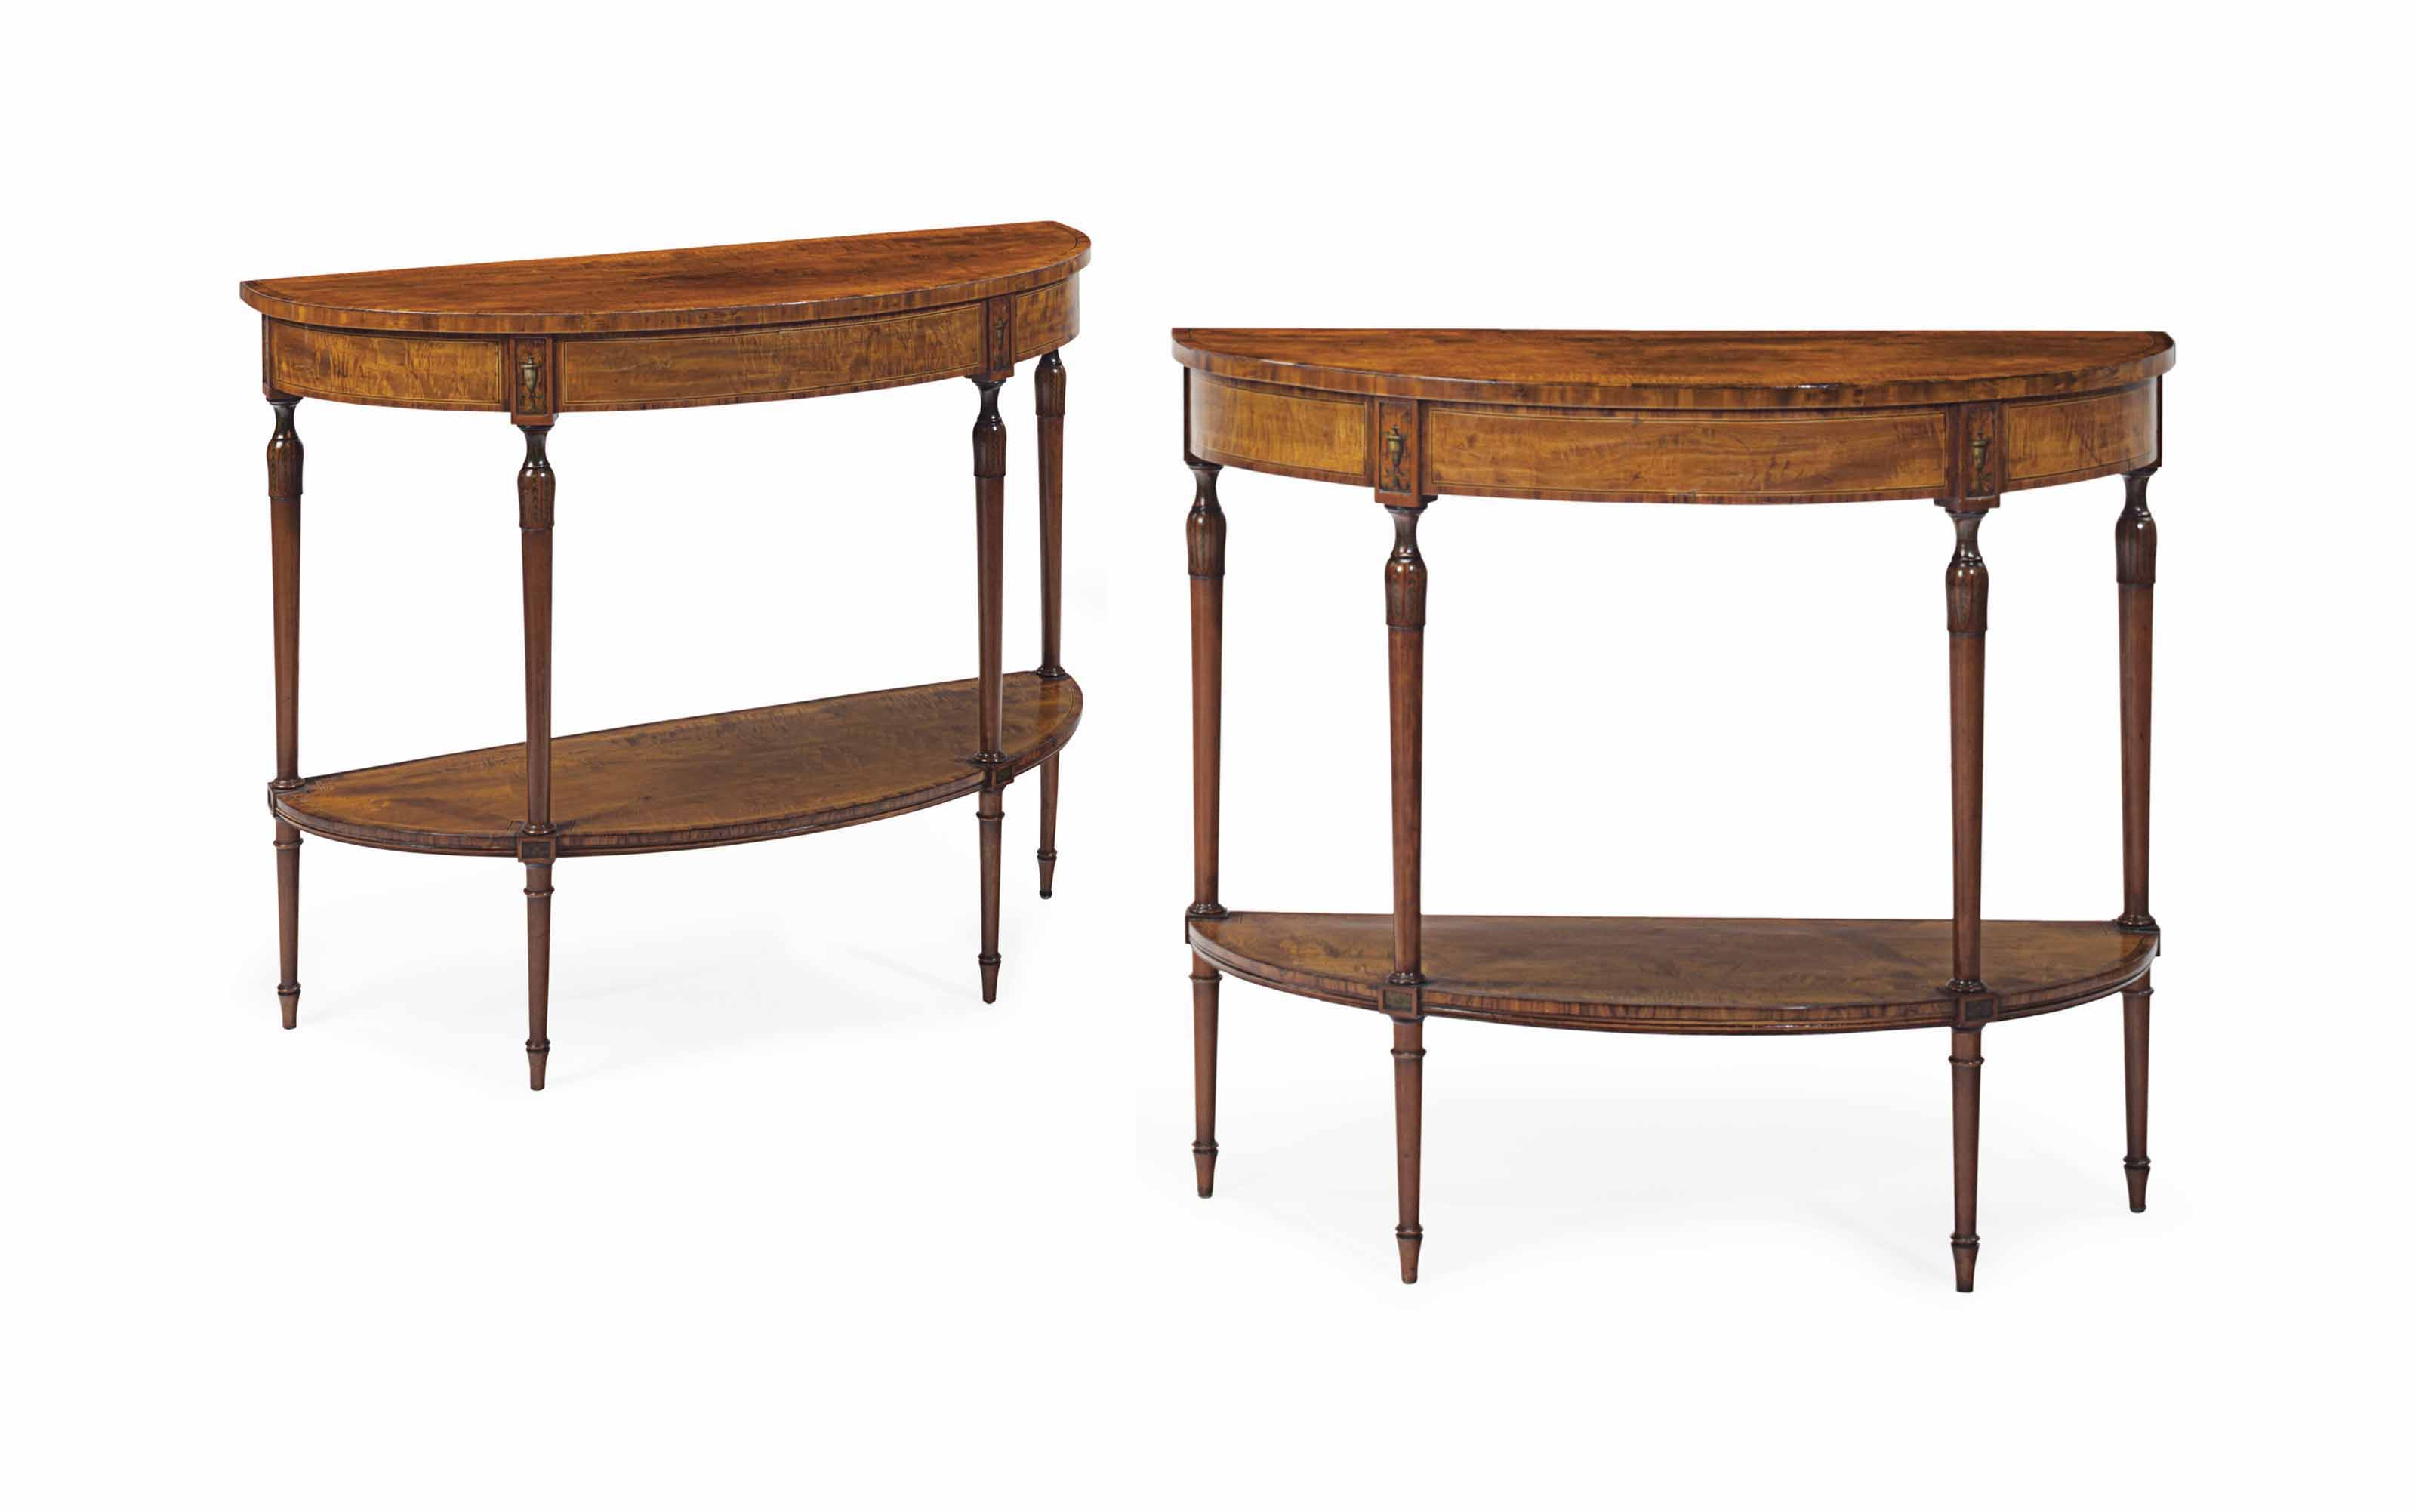 A PAIR OF GEORGE III SATINWOOD, KINGWOOD AND POLYCHROME-PAINTED SIDE TABLES